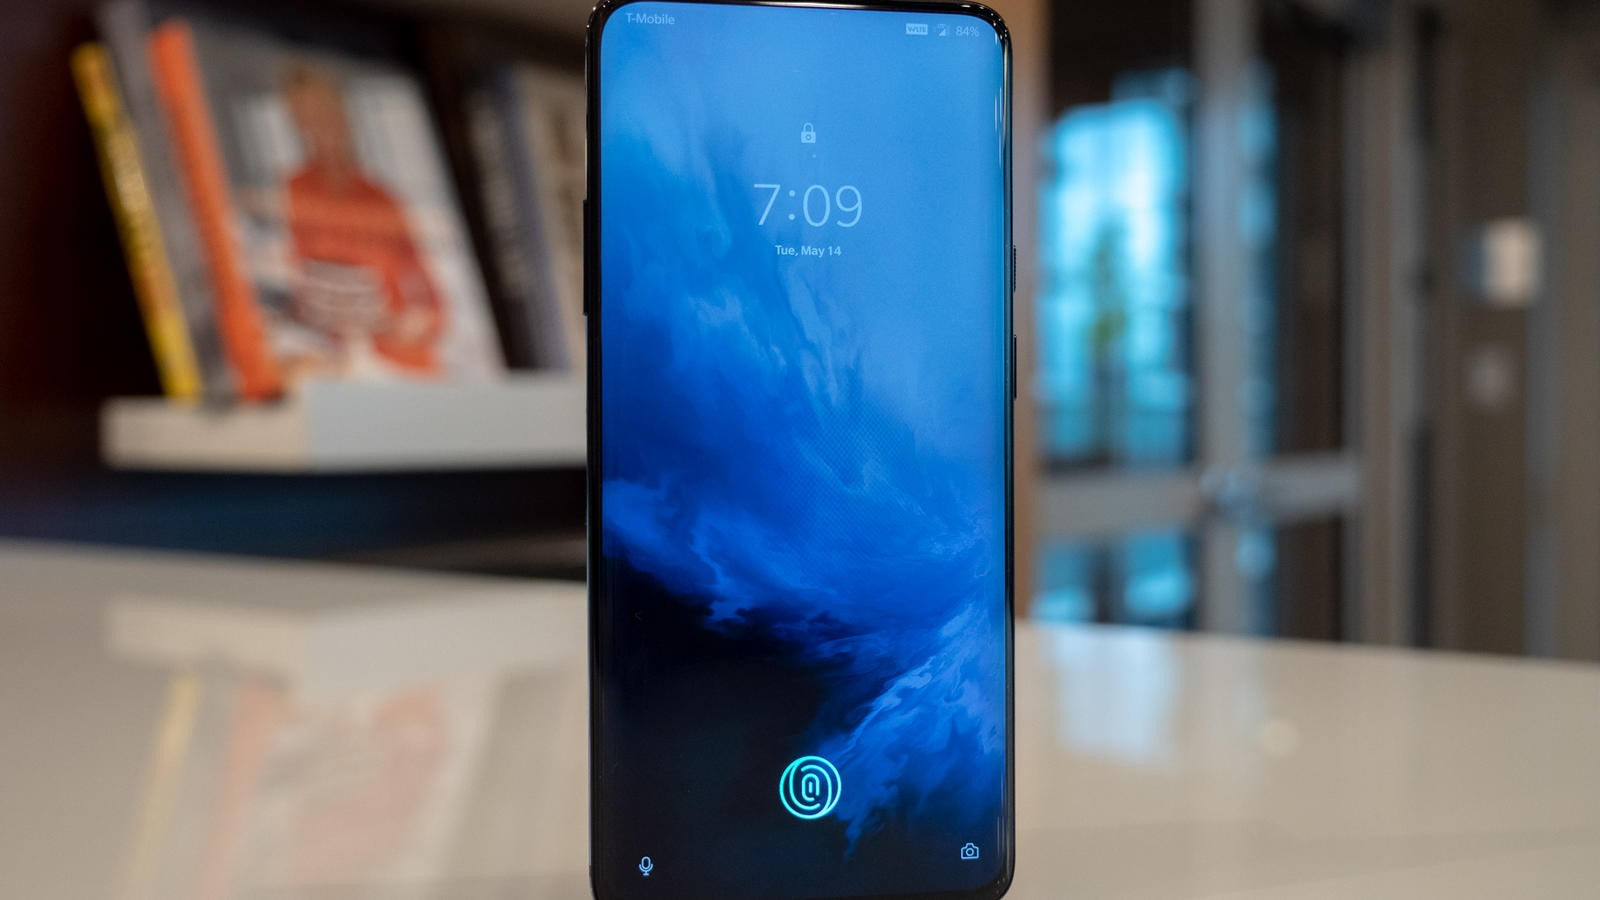 oneplus 7 pro 20 - All you need to know about the OnePlus 7 Pro and 7